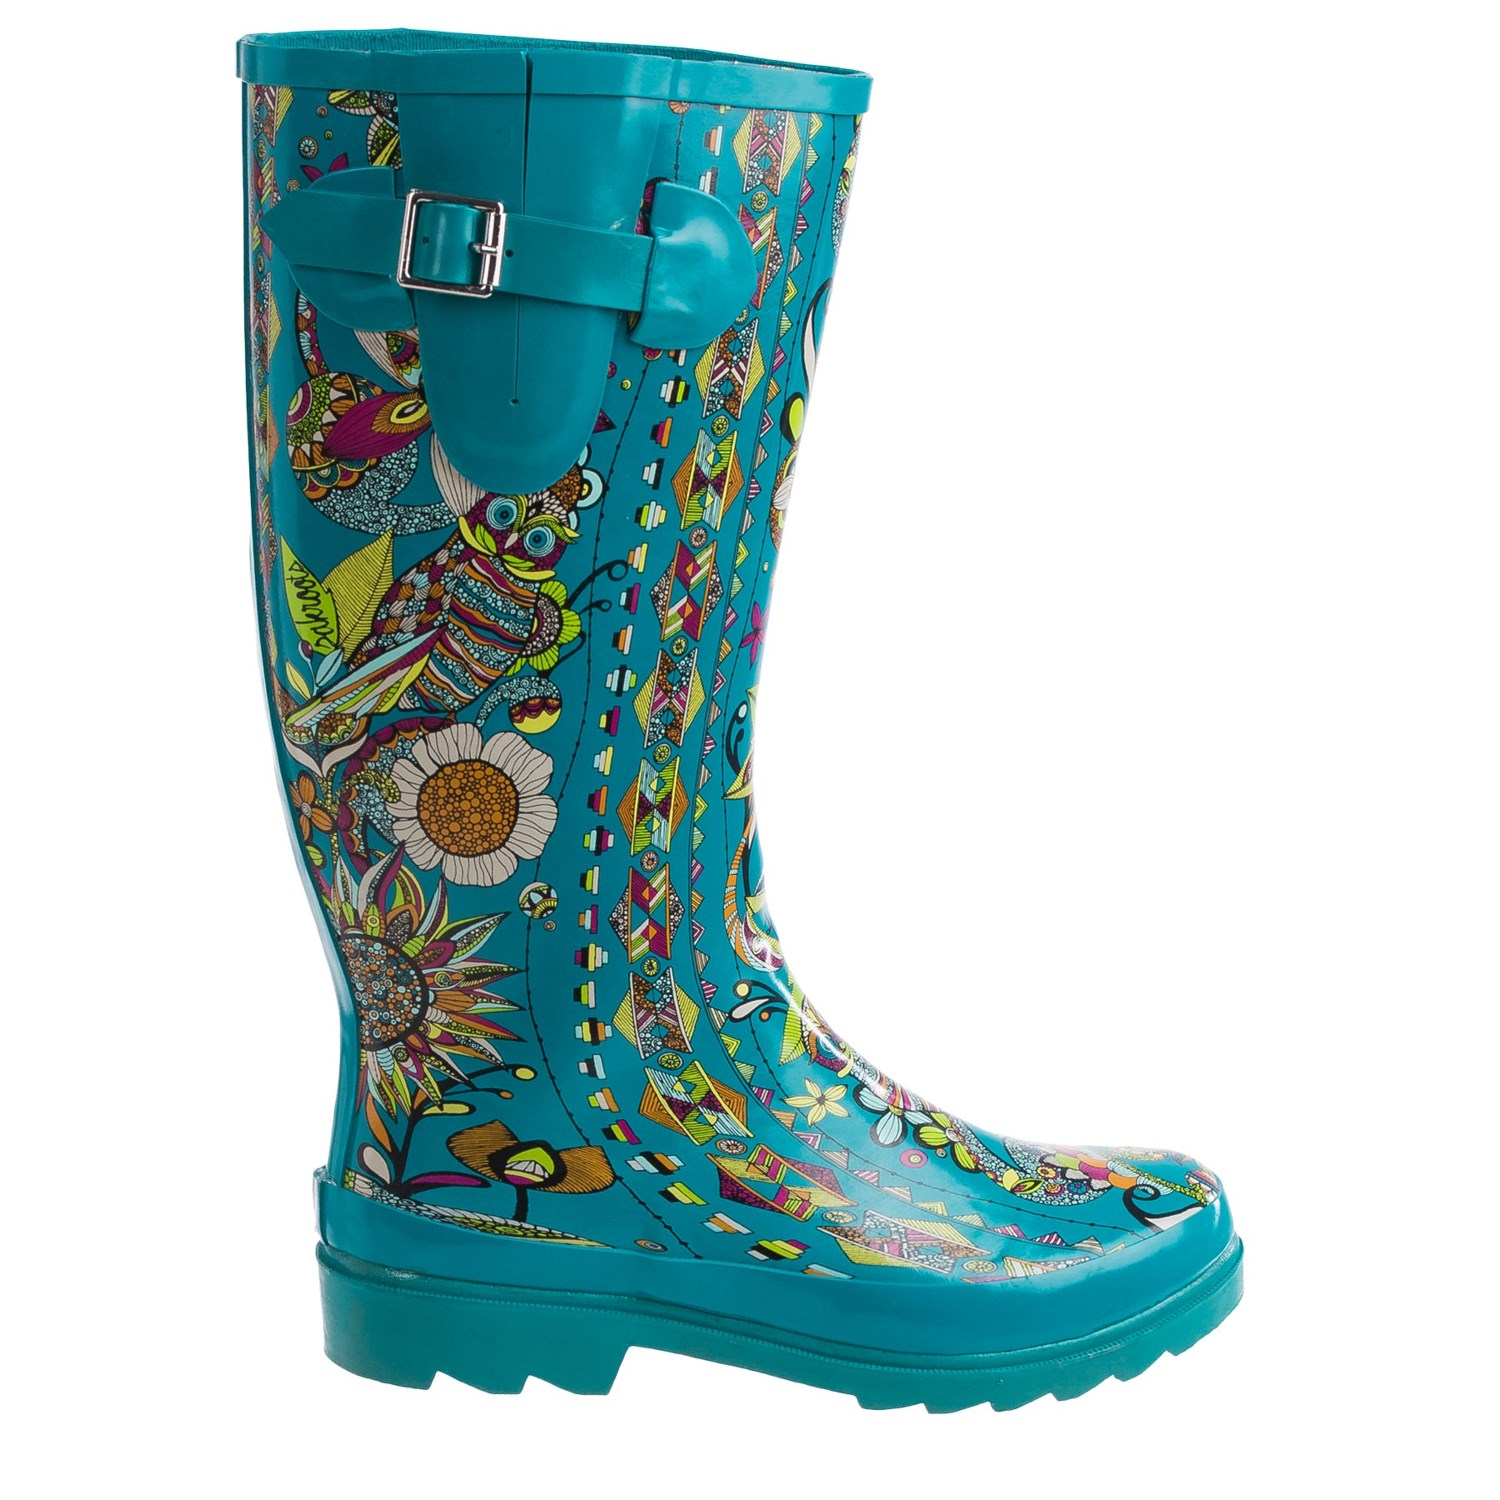 Keen Waterproof Boots